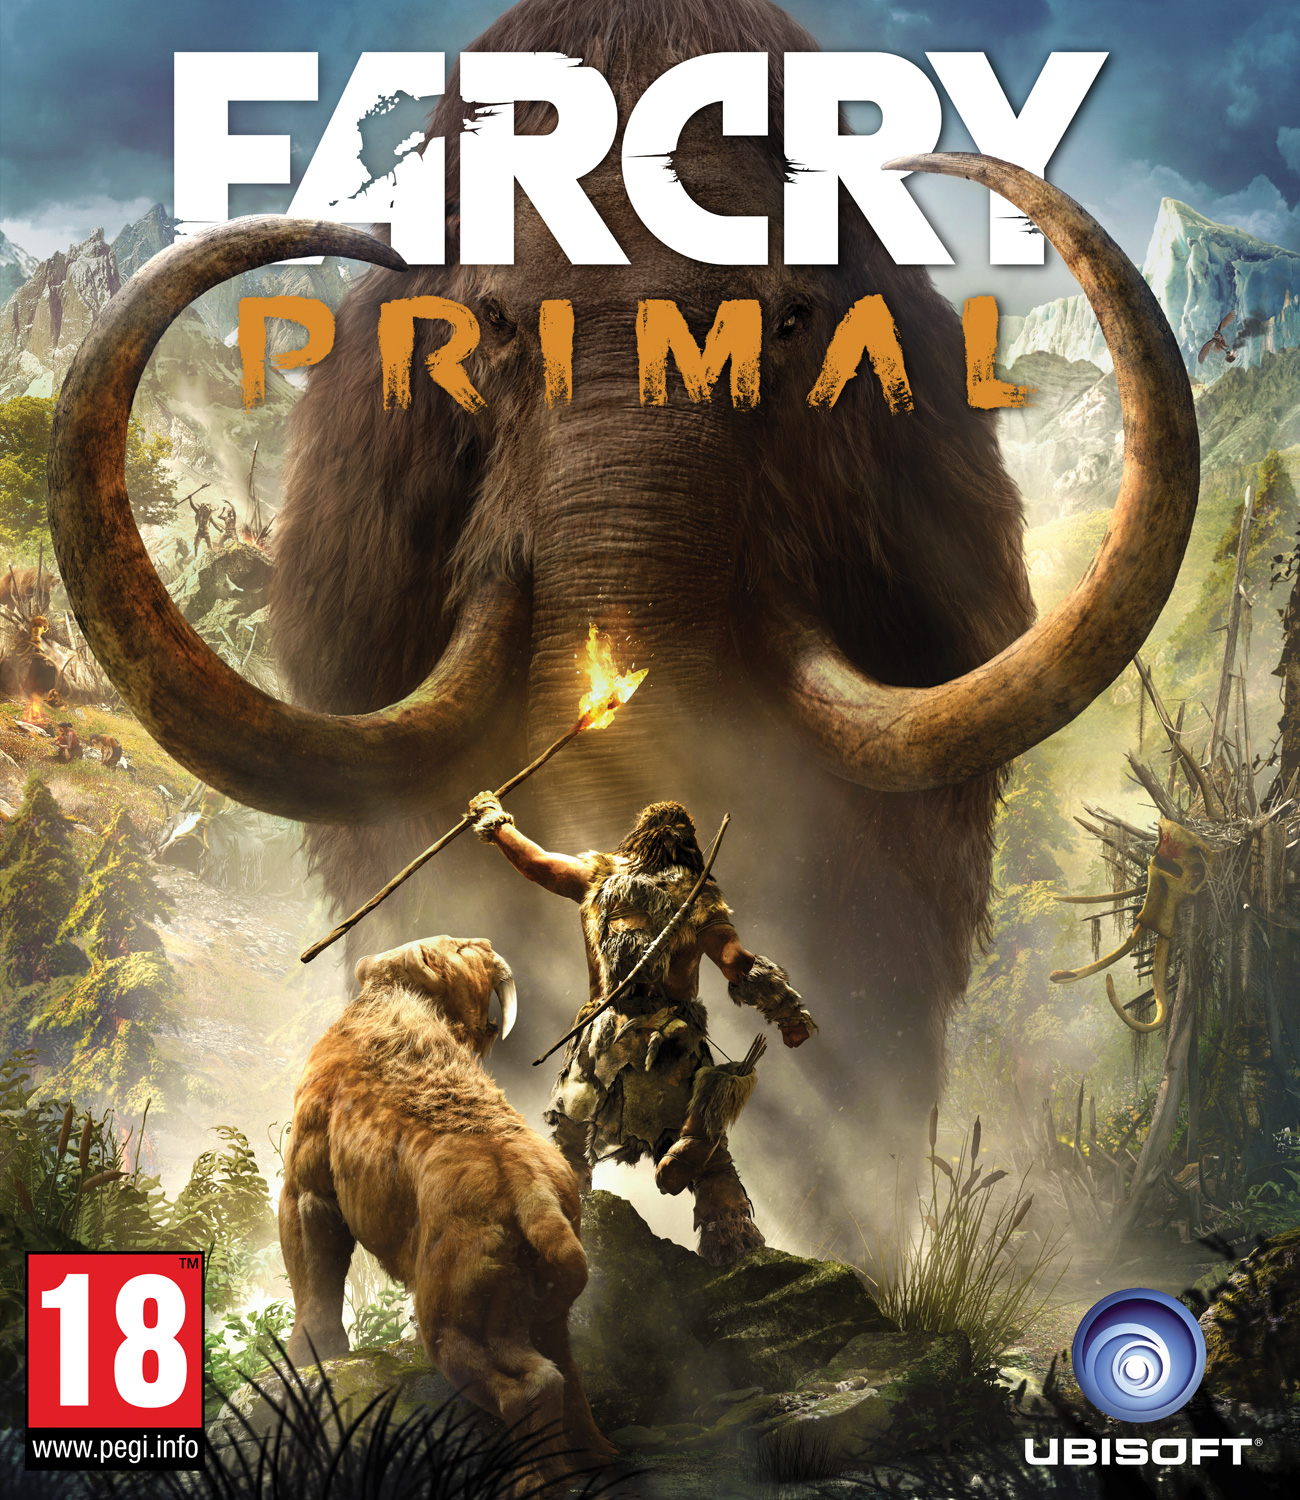 FarCryPrimal_KEY_ART